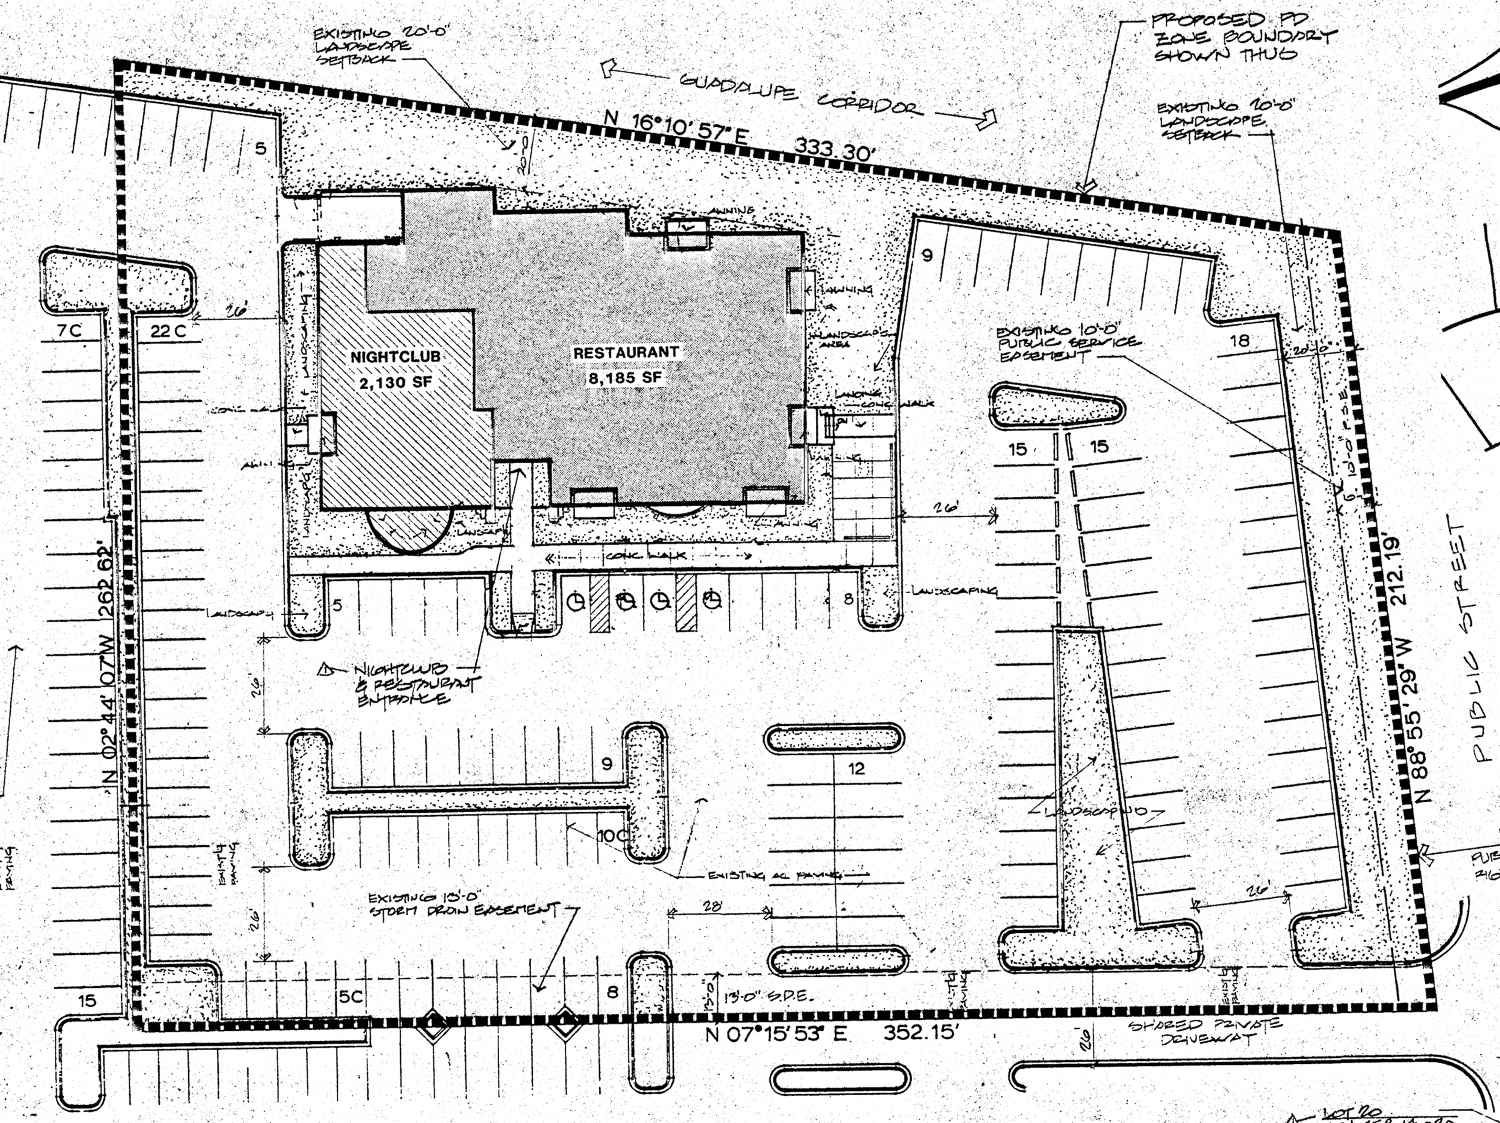 1007 Blossom Hill Road, site plan by Douglas G Young Architect for circa 1995